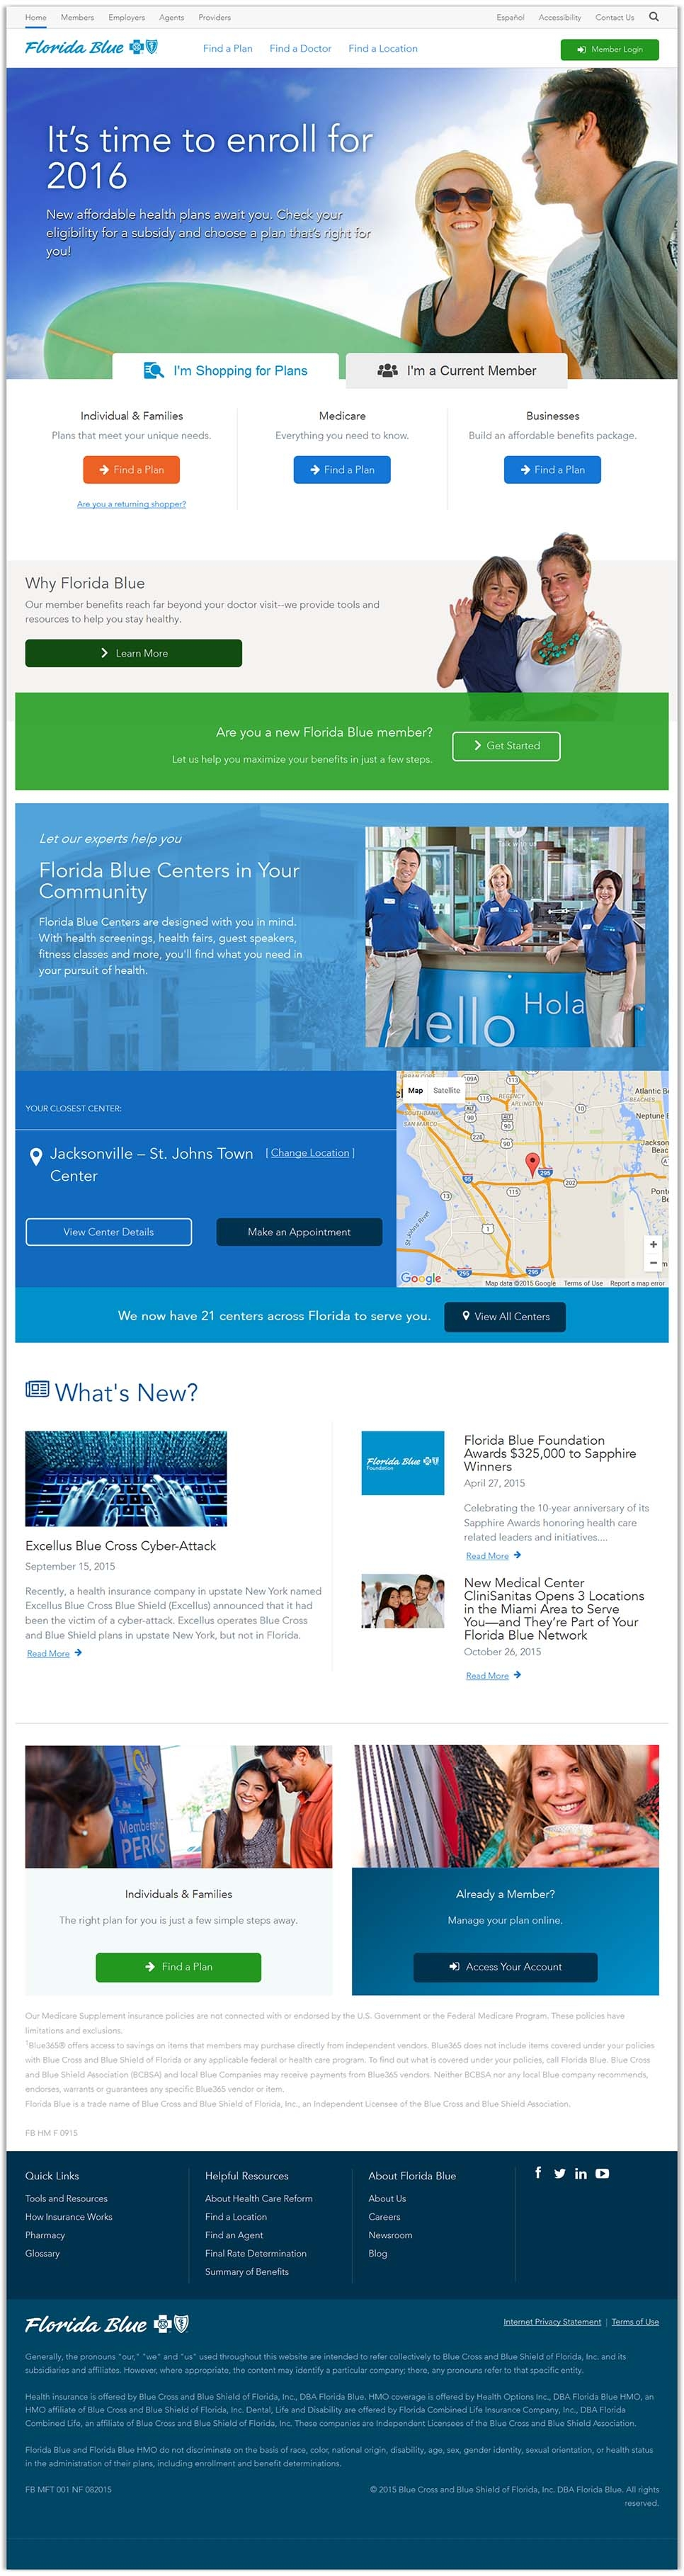 Florida Blue's full homepage design, an enterprise-sized company